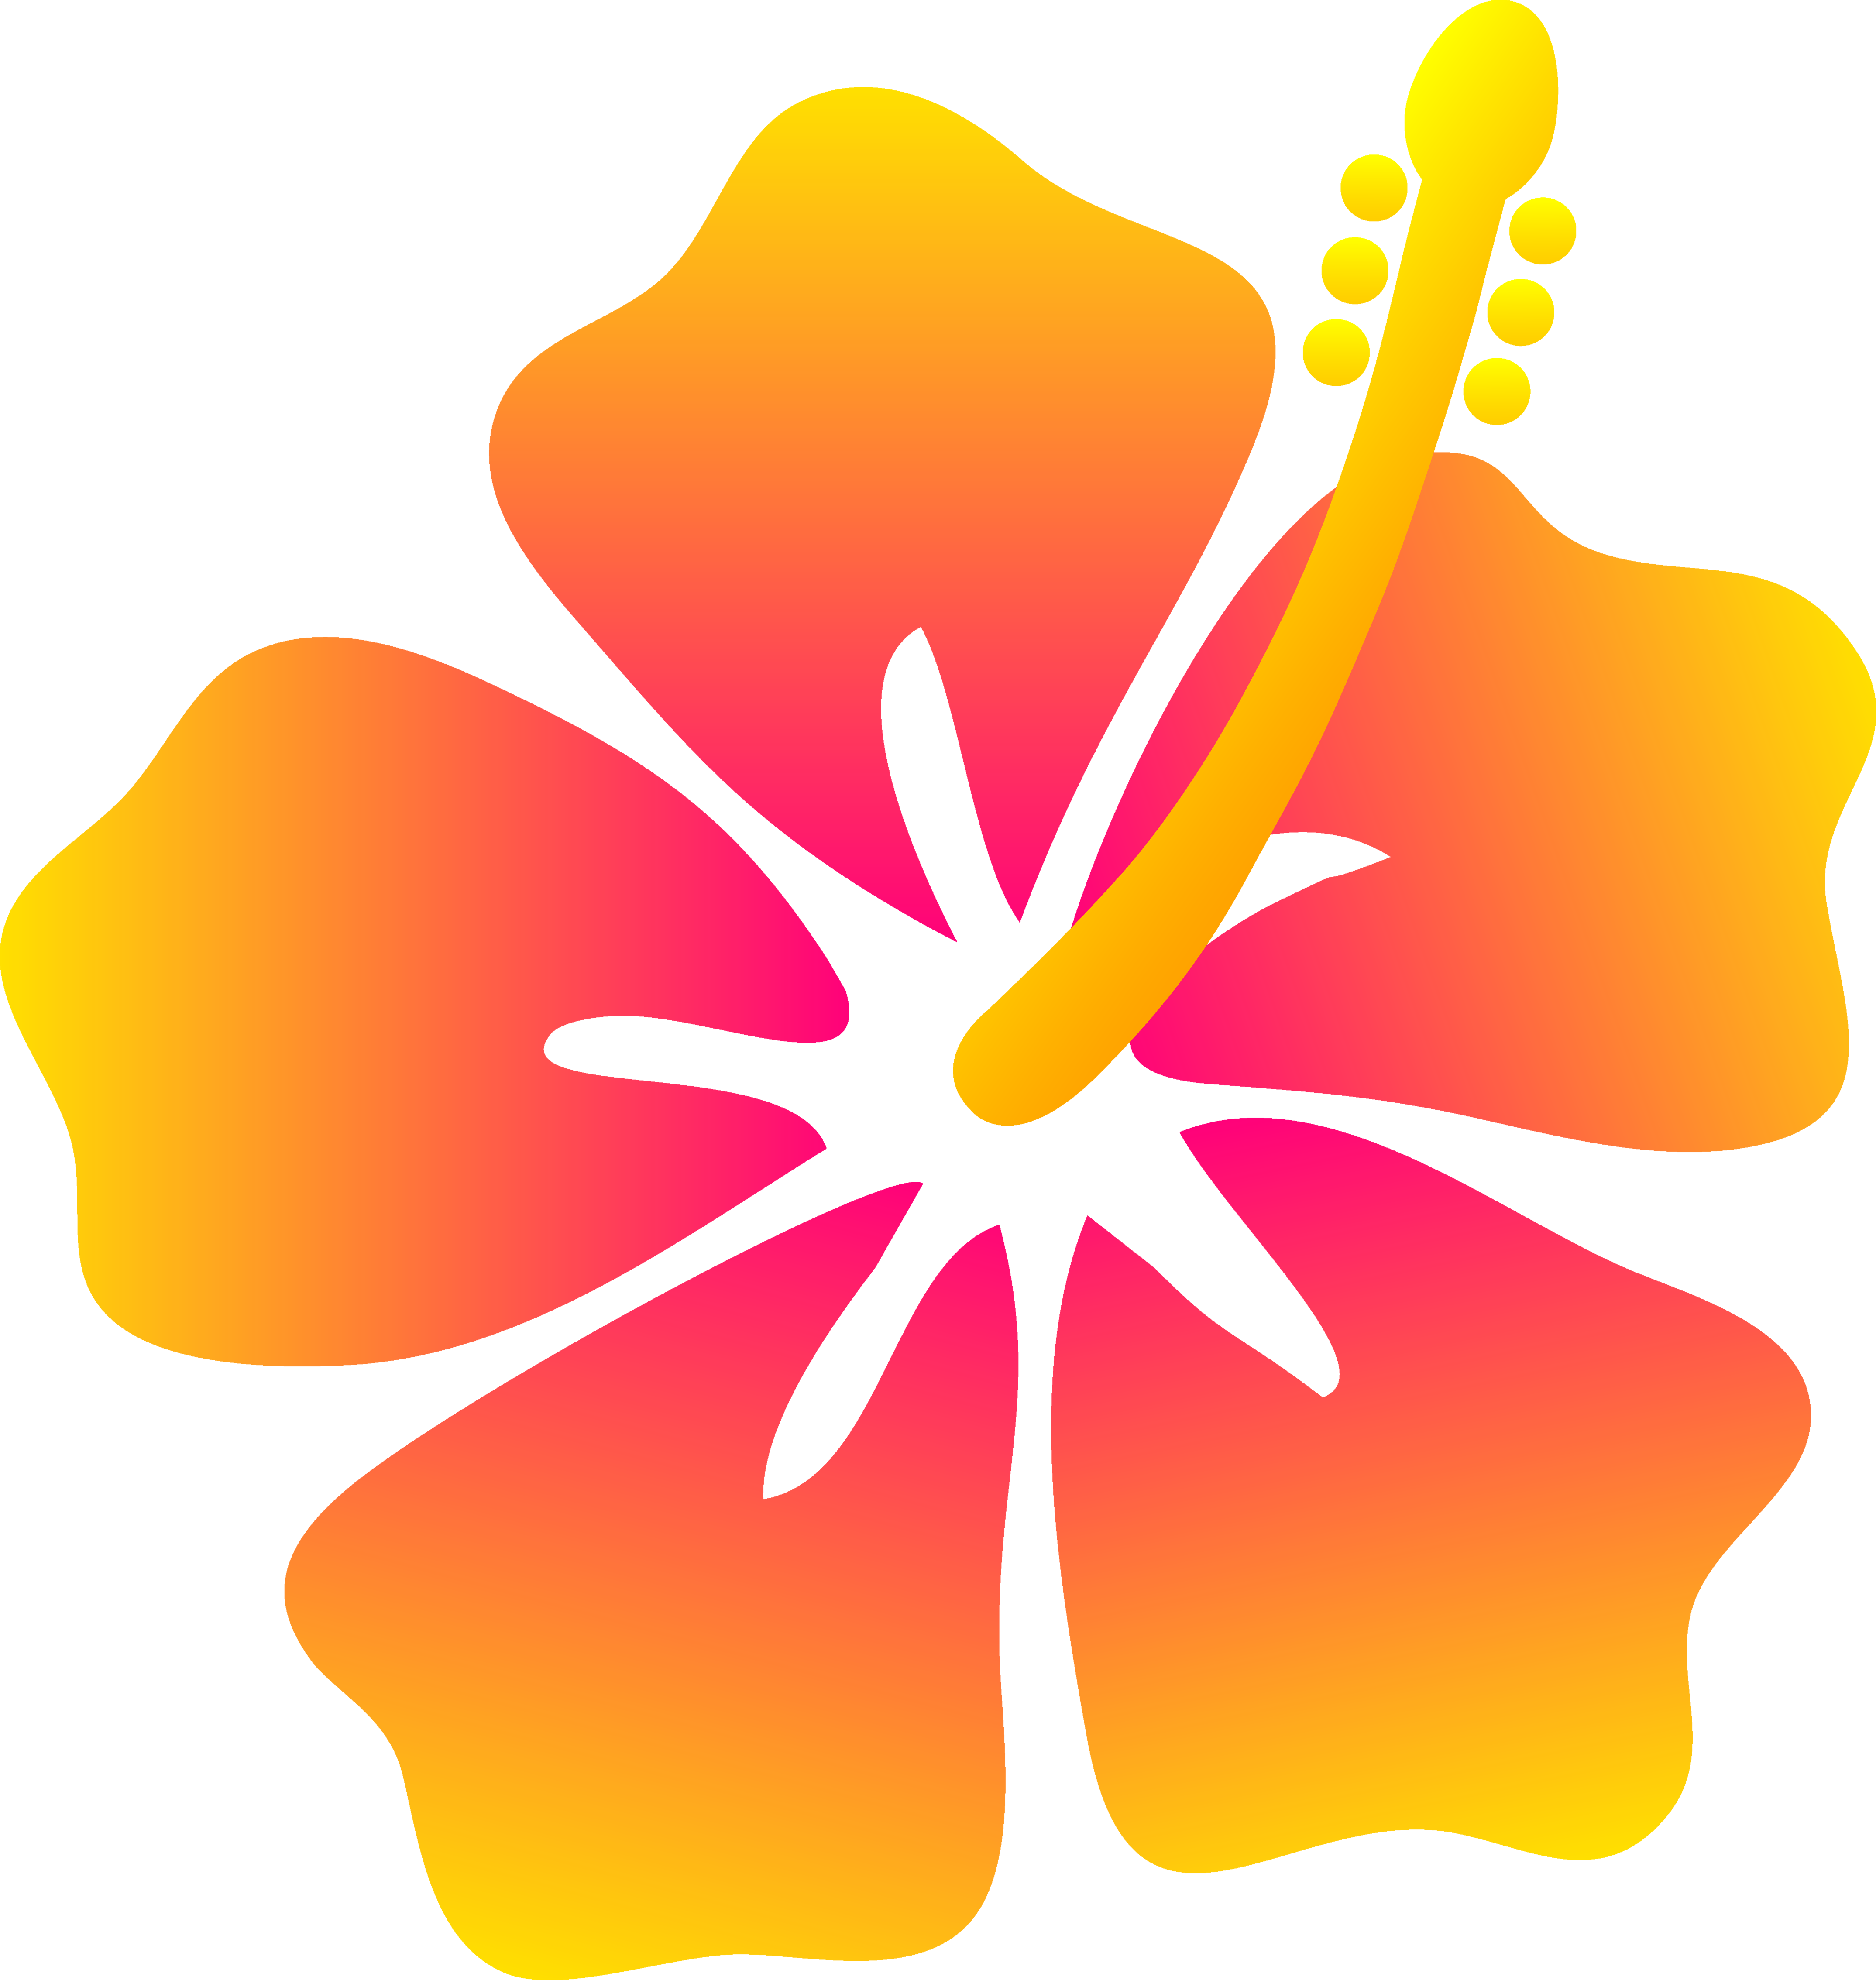 Yellow Flower clipart animated Hibiscus Flower Collection Orange hibiscus